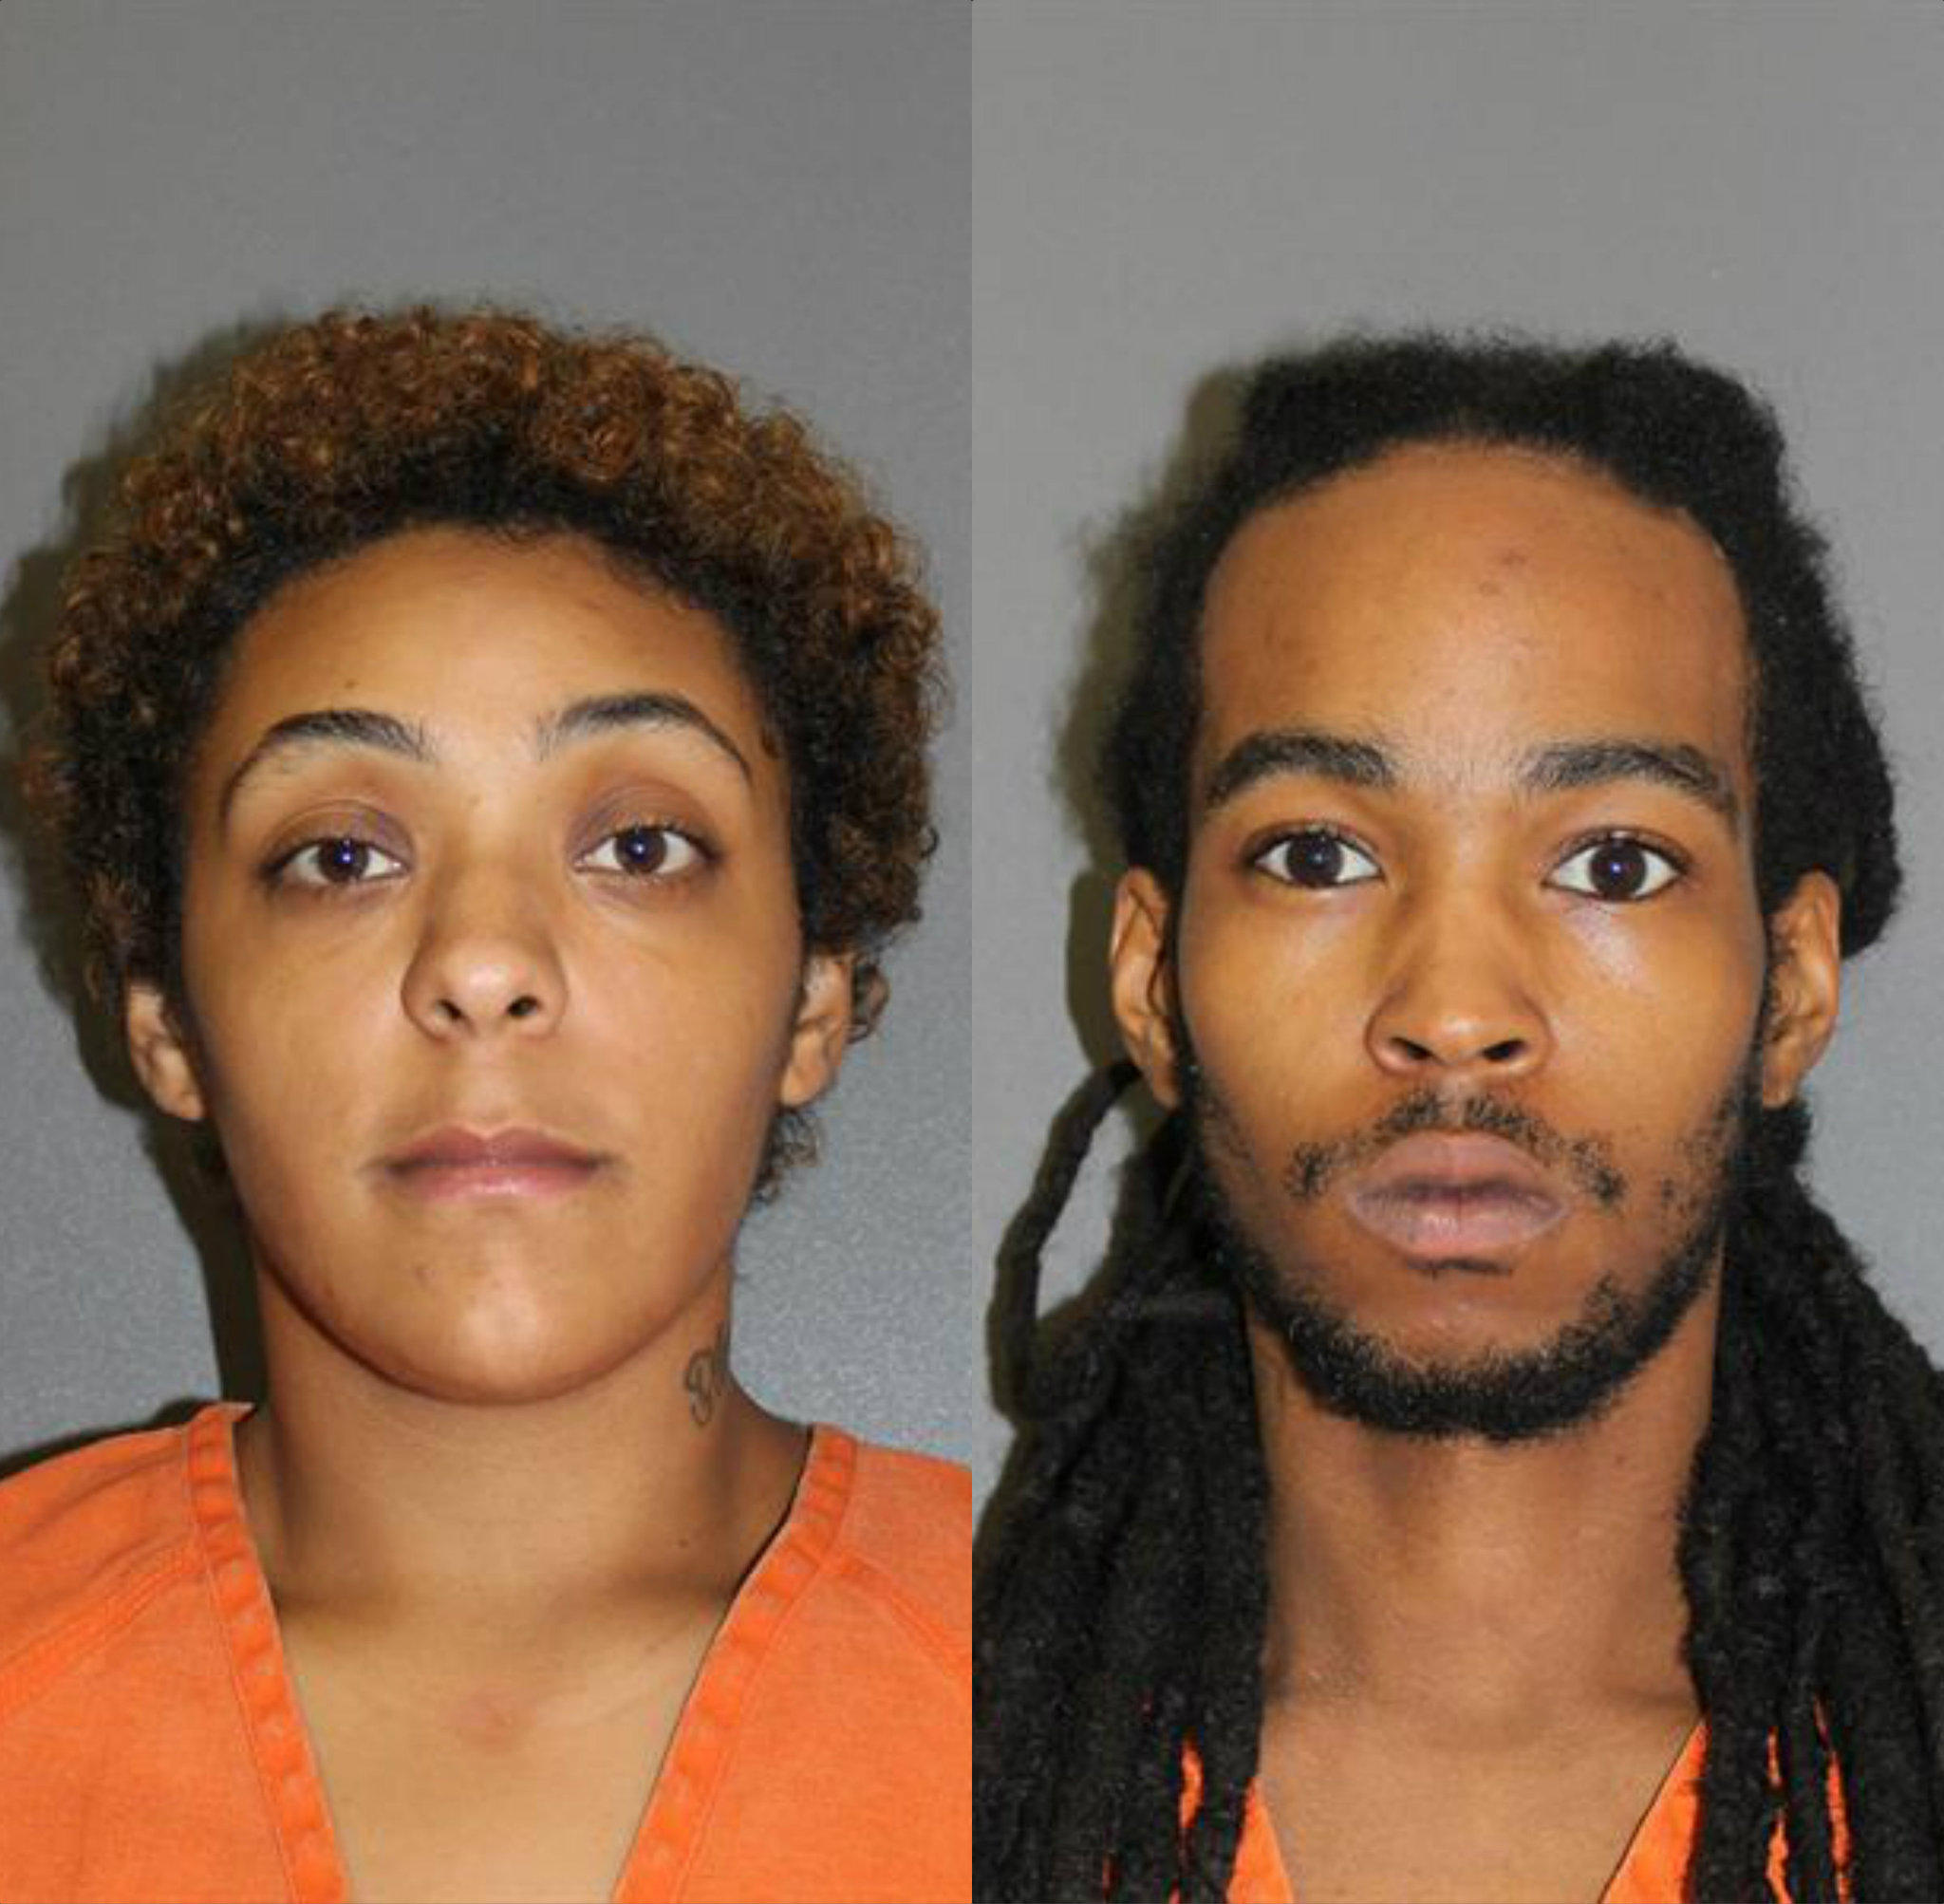 Carisa Hall and Daniel Evans III, both of South Daytona, are accused in a home-invasion robbery in Palm Coast.